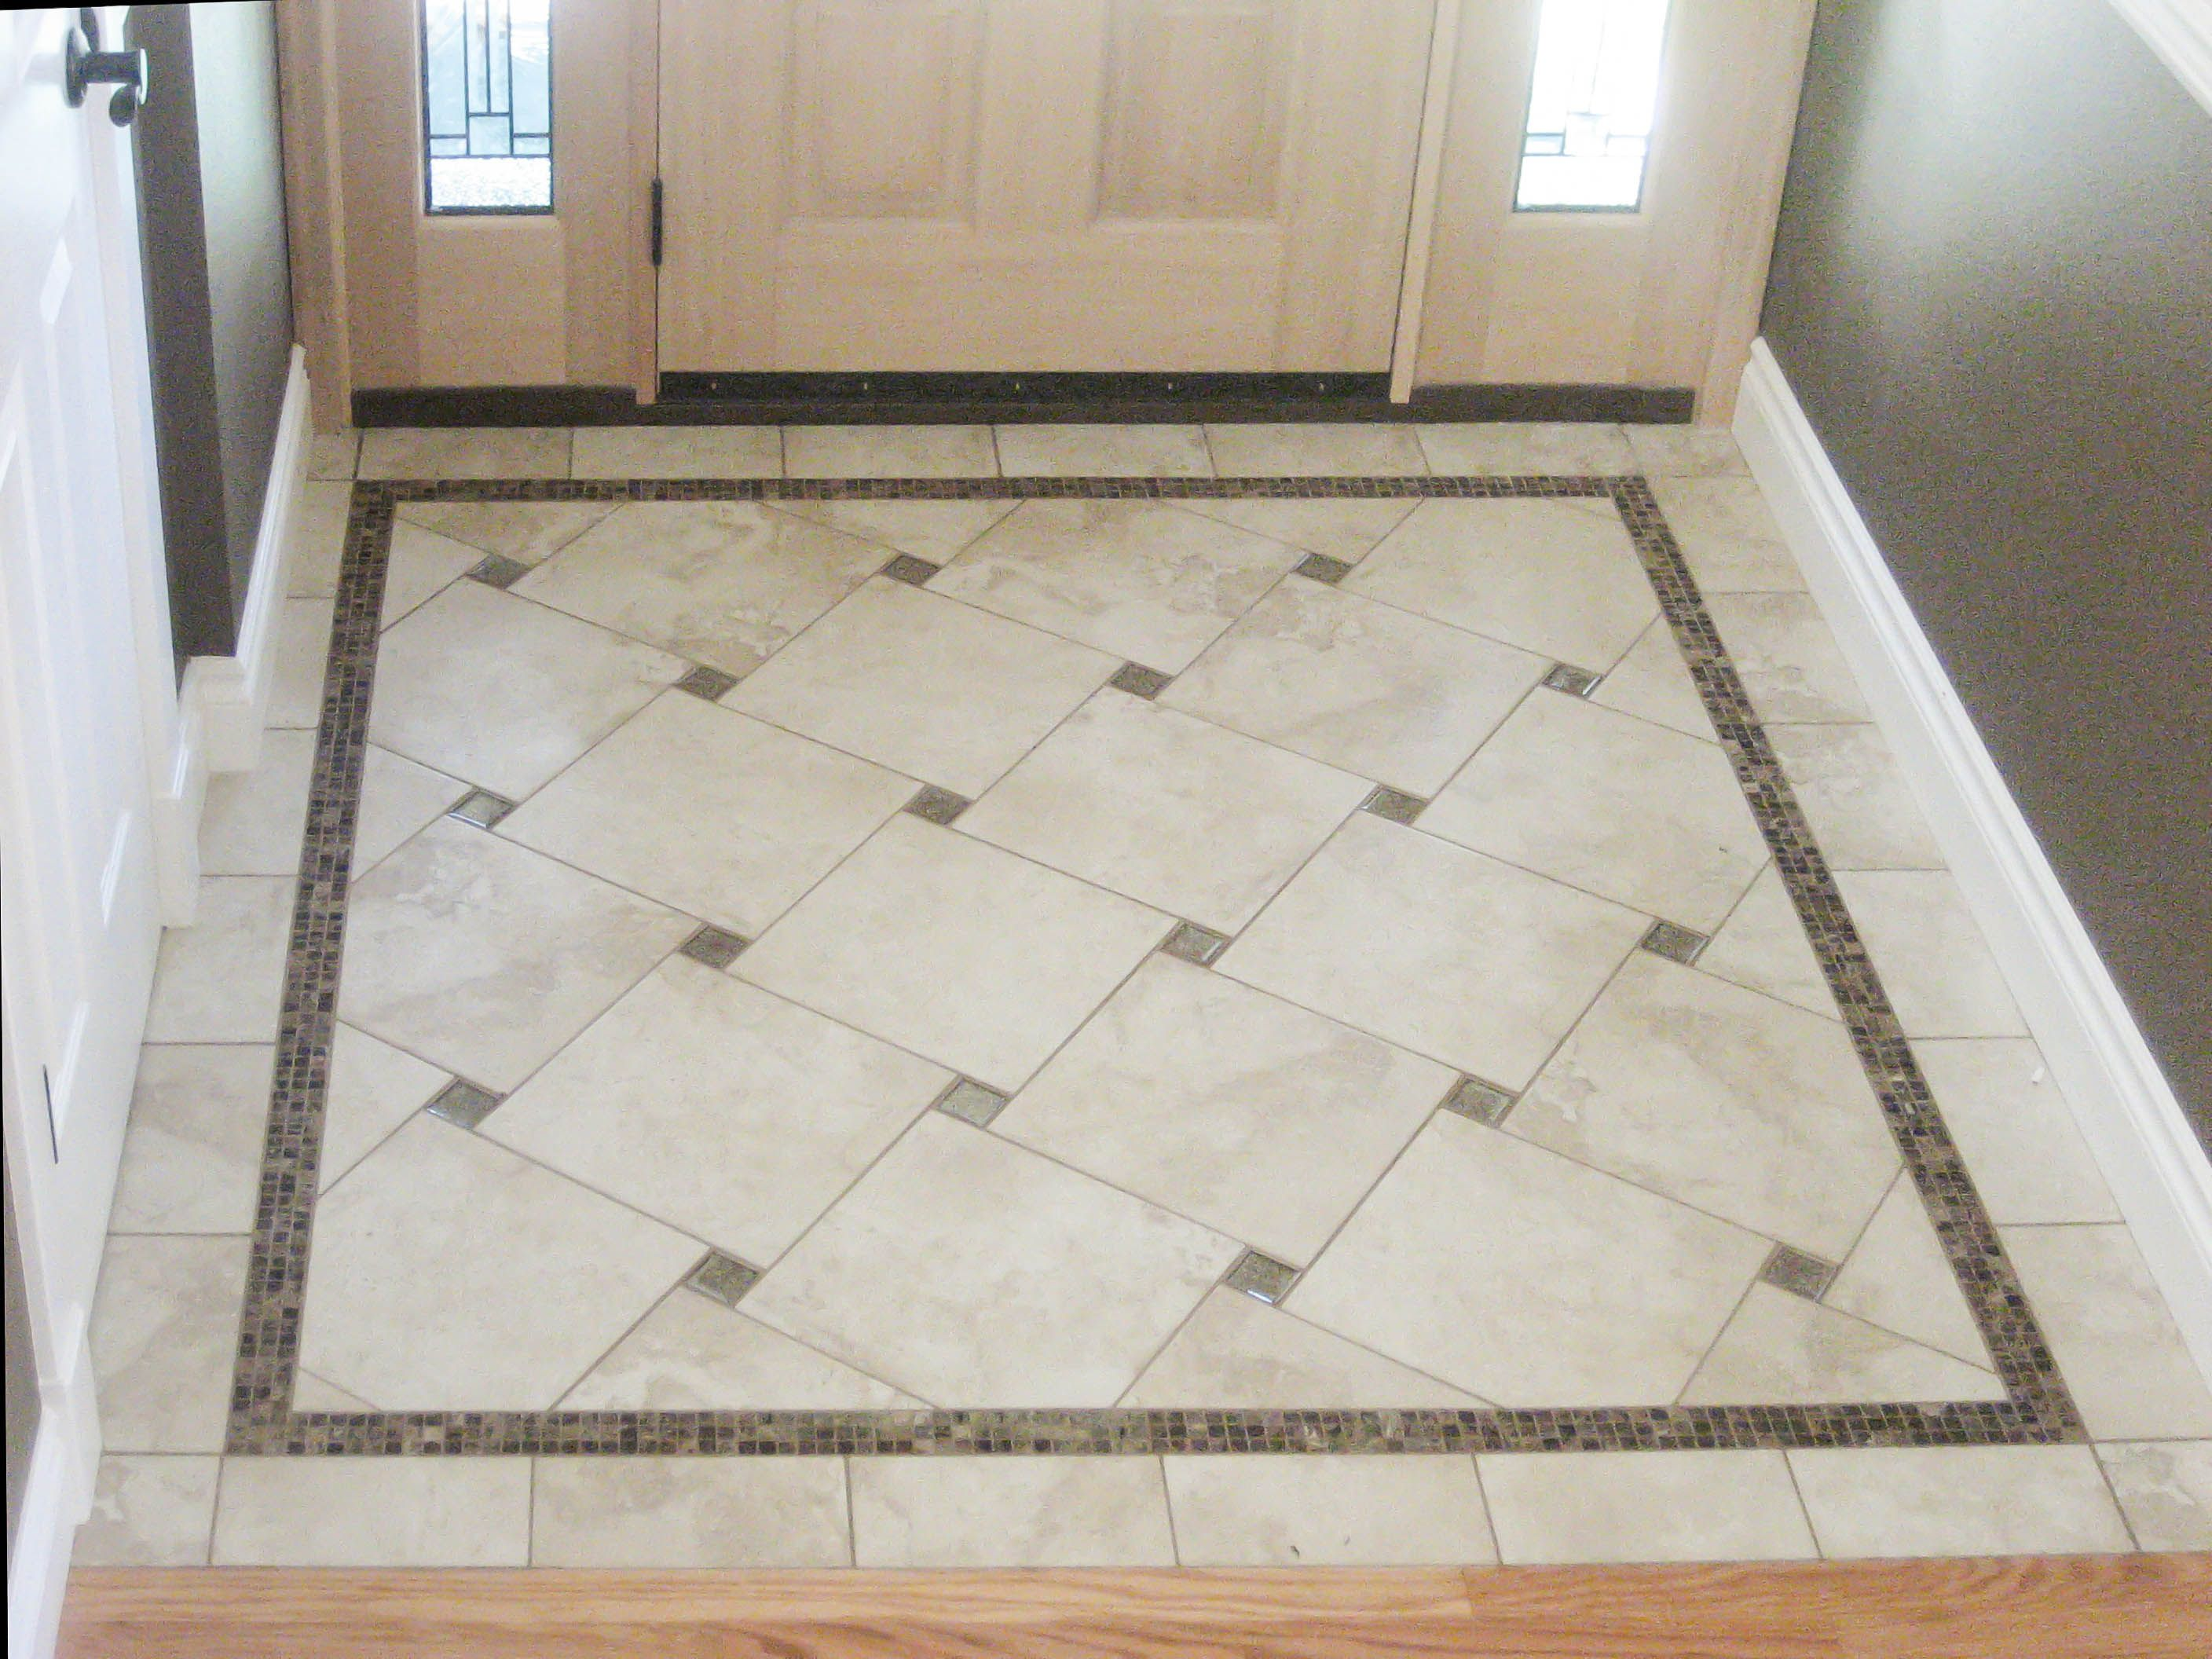 Awesome Entry Floor Tile Ideas | Entry Floor Photos Gallery   Seattle Tile  Contractor | IRC Tile Servic